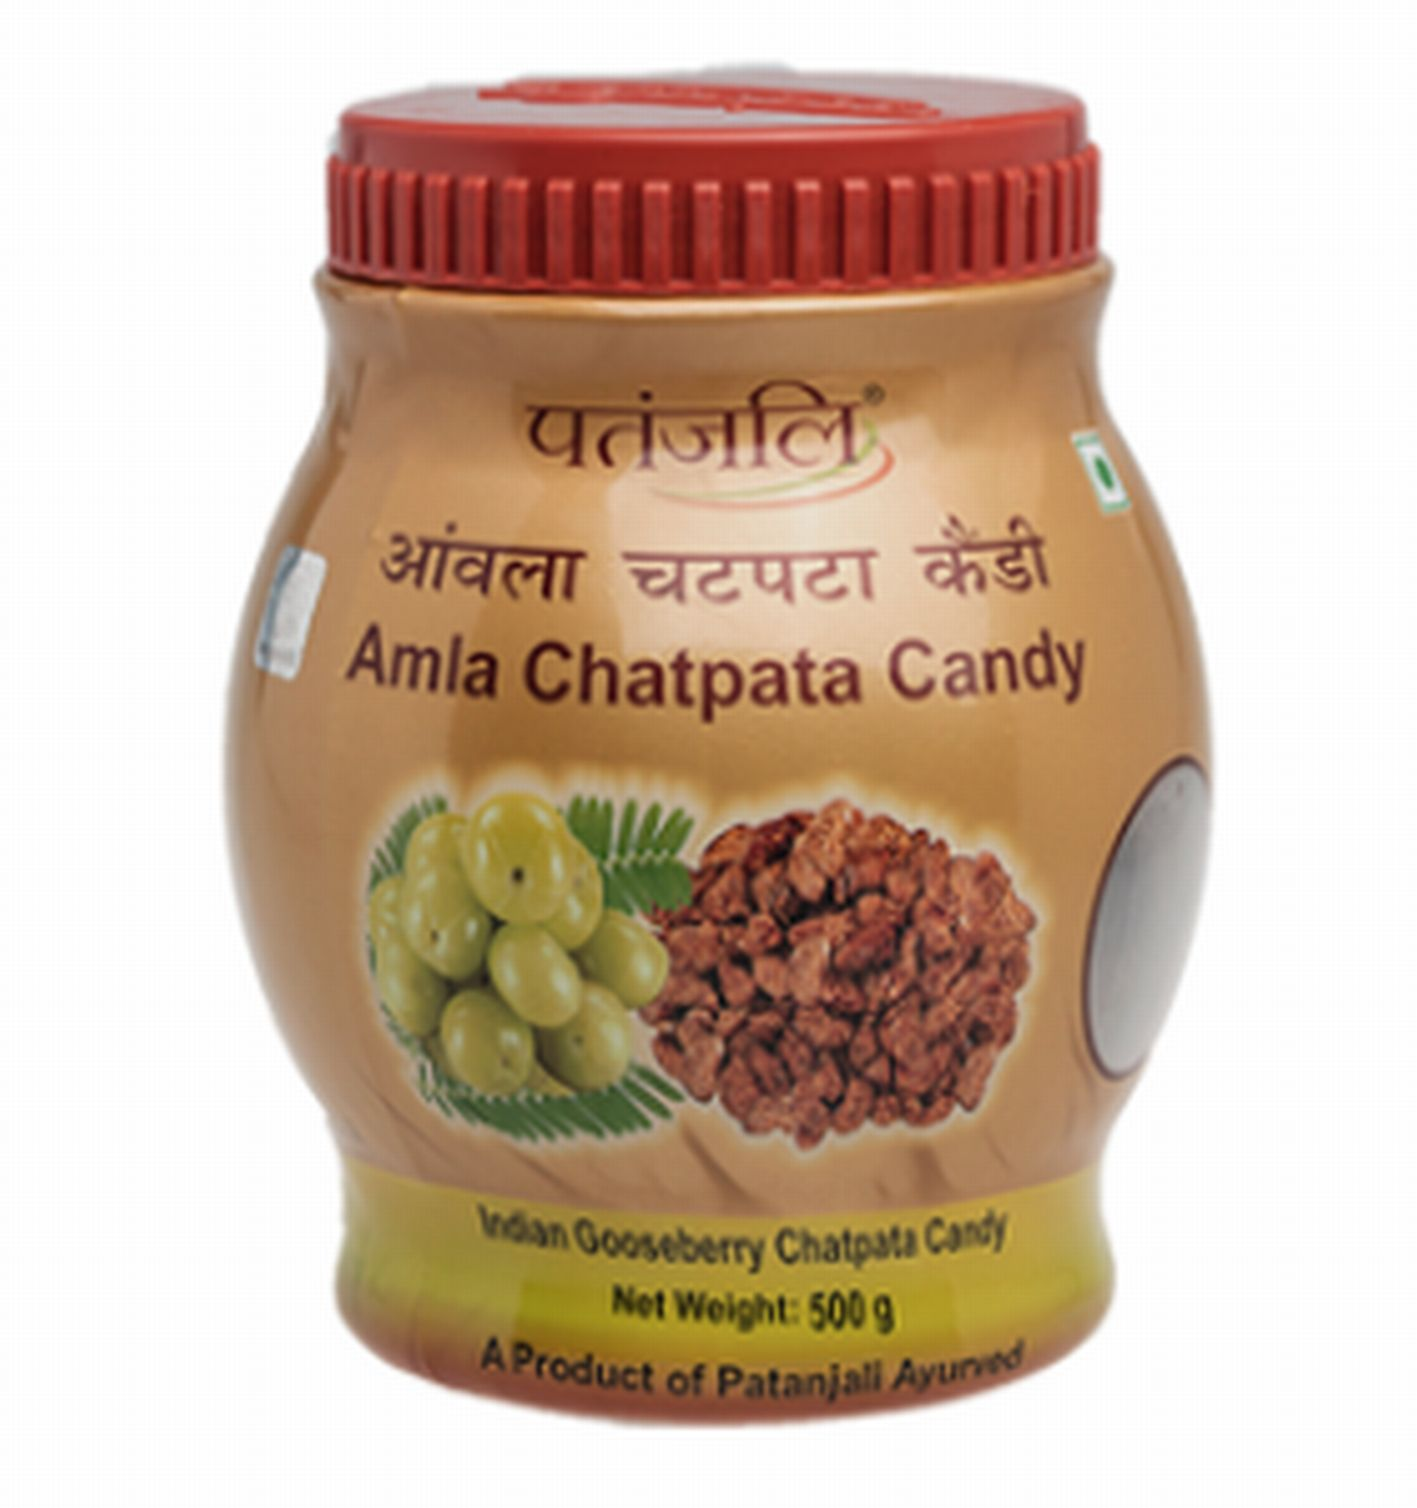 <b>AMALAKI CHATPATA CANDY- WHOLE FRUIT</b><br>DIVYA - Emblica Officinalis<BR>AMLA CHATPATA / NELLIKKAI CHATPATA CANDY IN PIECES<BR>ORGANIC AND WILD<br>500 grs